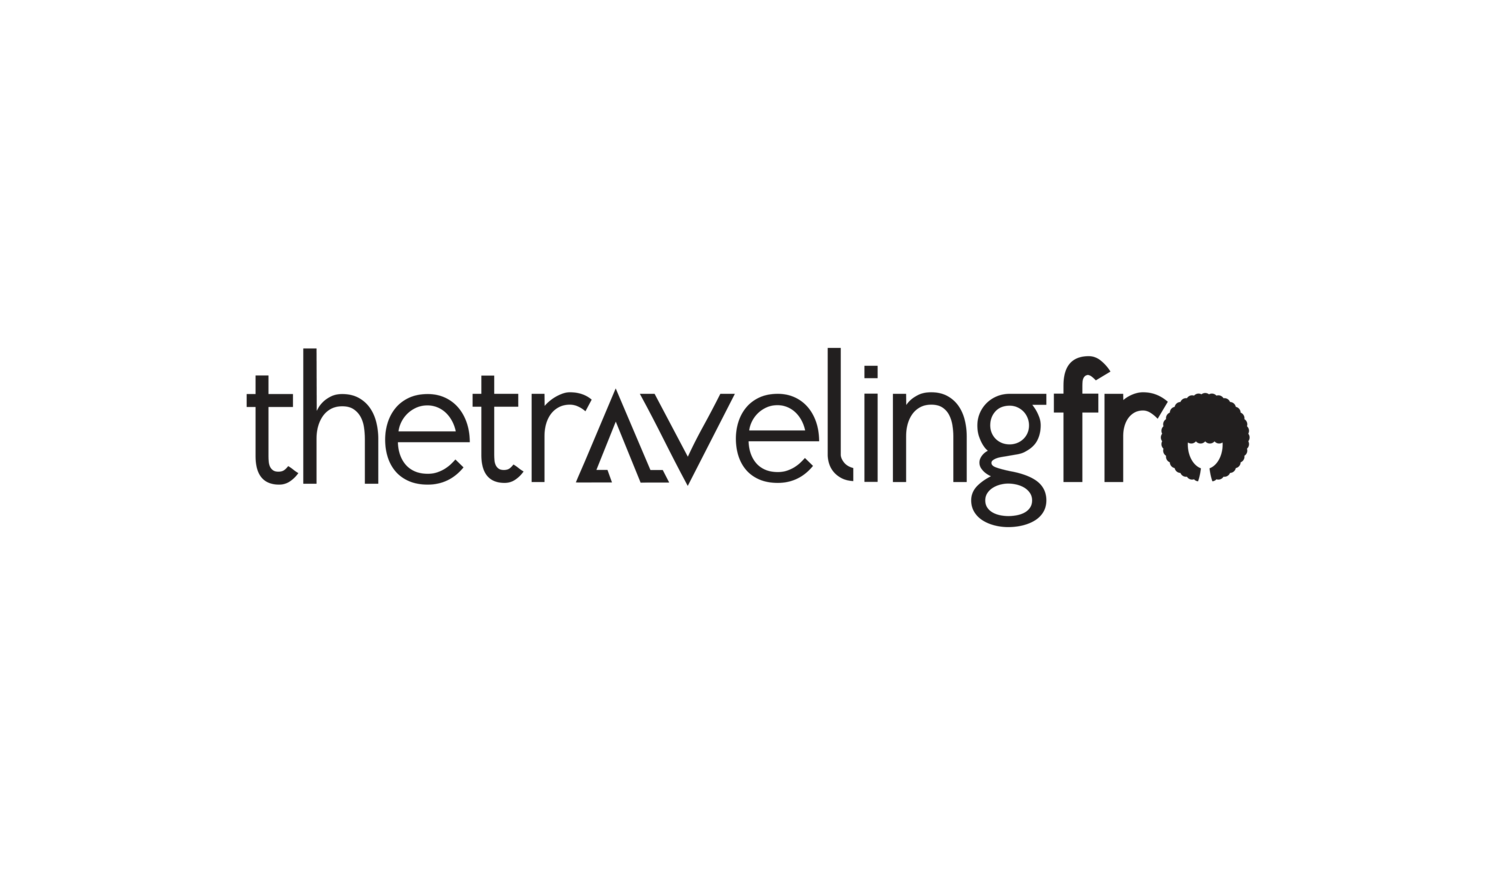 the-traveling-fro-logo